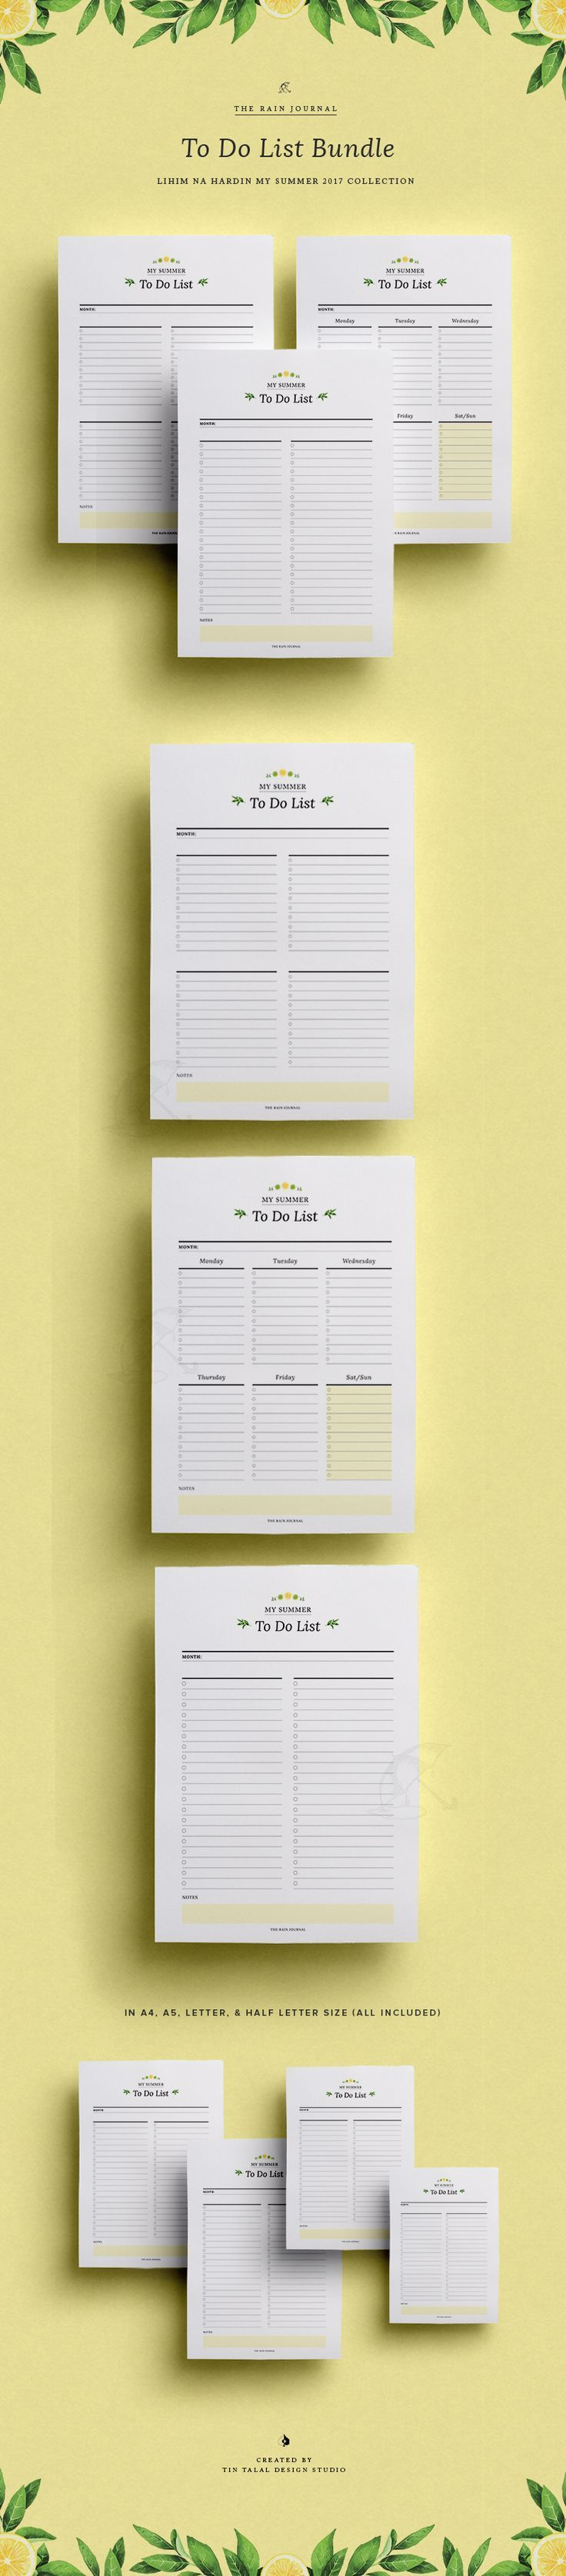 To Do List Printable Bundle - Weekly To Do List Printable Planner. Weekly Organizer. Weekly Planner Printable. Available in A4, A5, Letter & Half Letter. Fit for Kikki K Large and A5 Filofax | Wall Planner, Desk Planner & Planner Insert. The Rain Journal Printable Planners. Life Planner